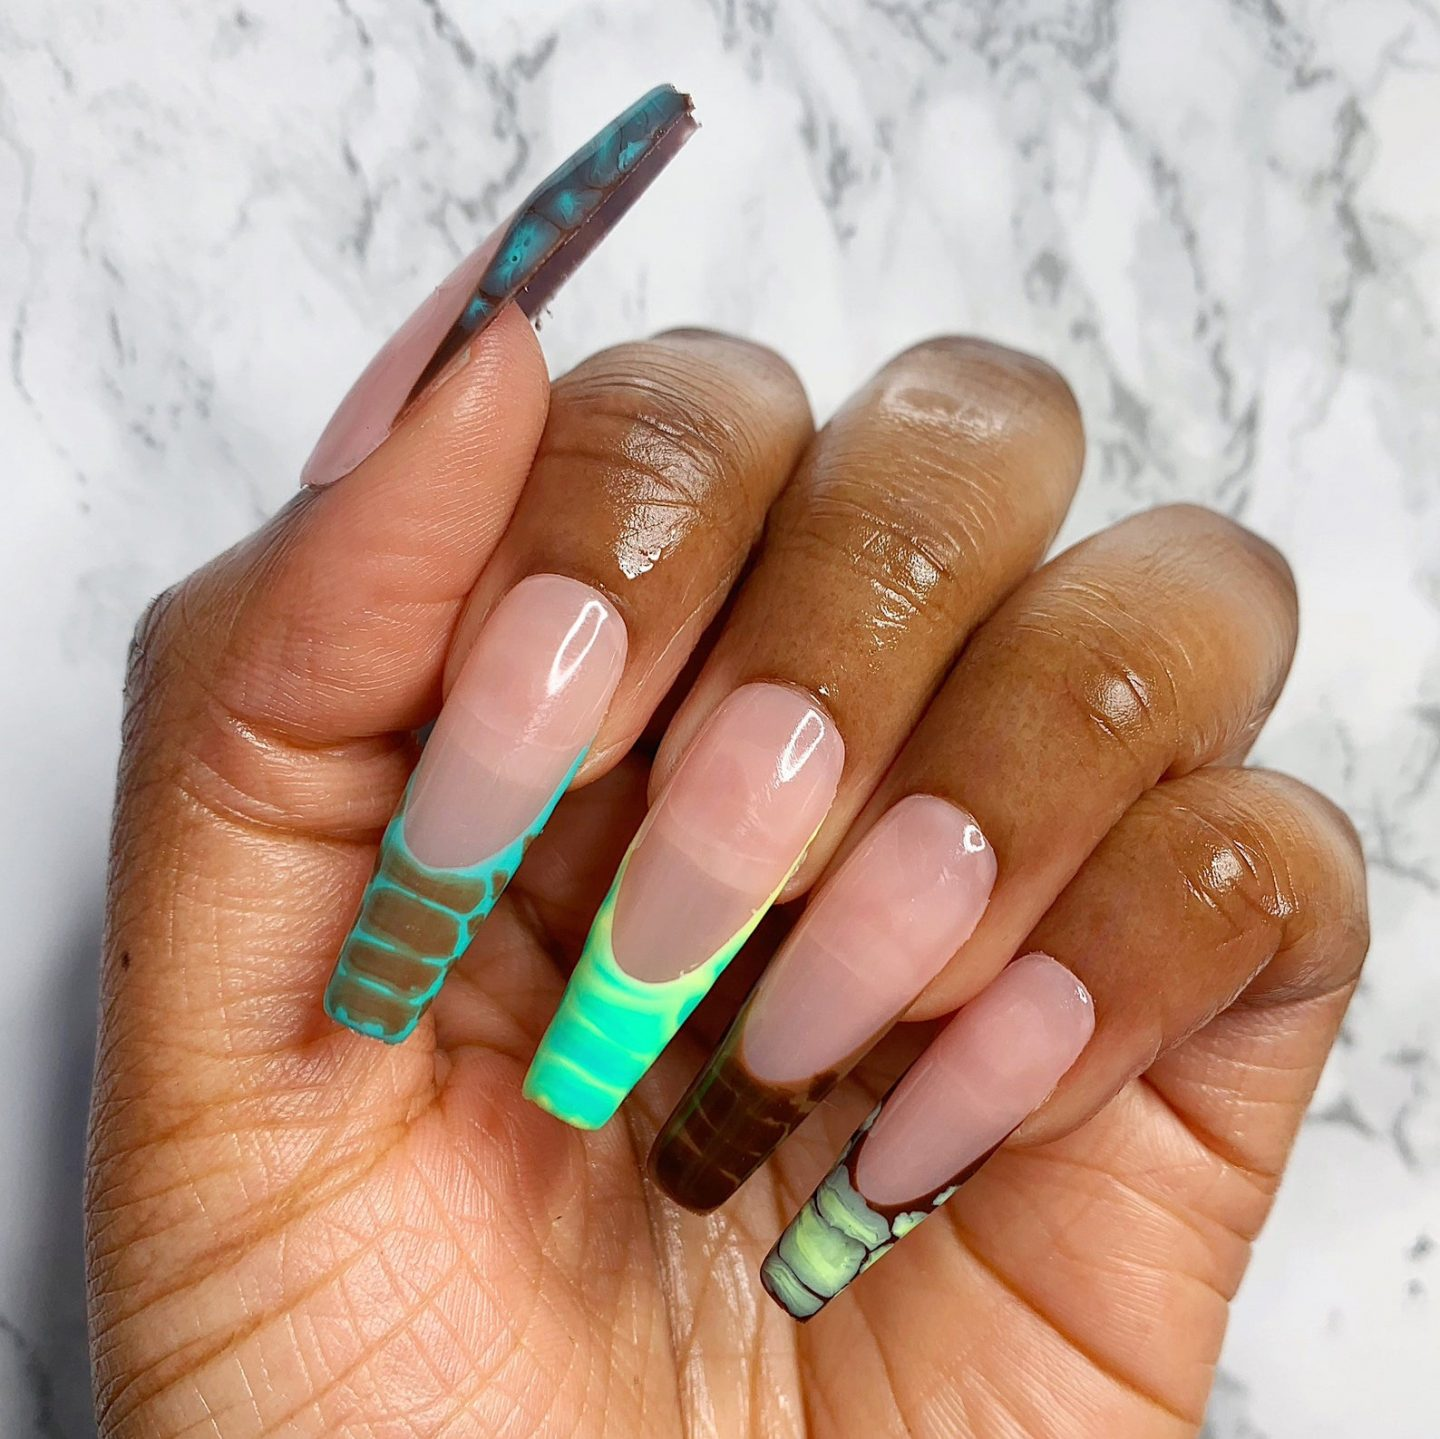 Brown and neon green French tip nails with crocodile nail art